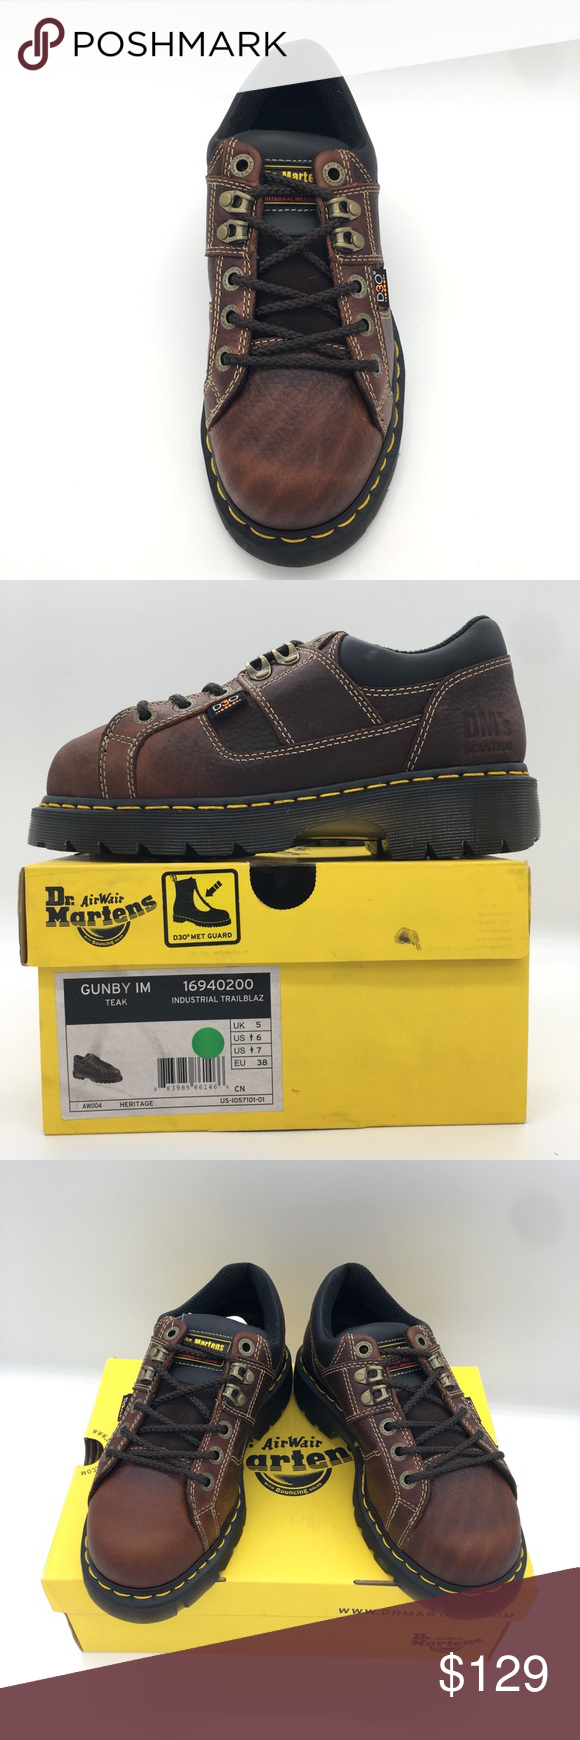 Dr. Martens Gunby Steel Toe Shoe (Men's Size 6) NWT (With